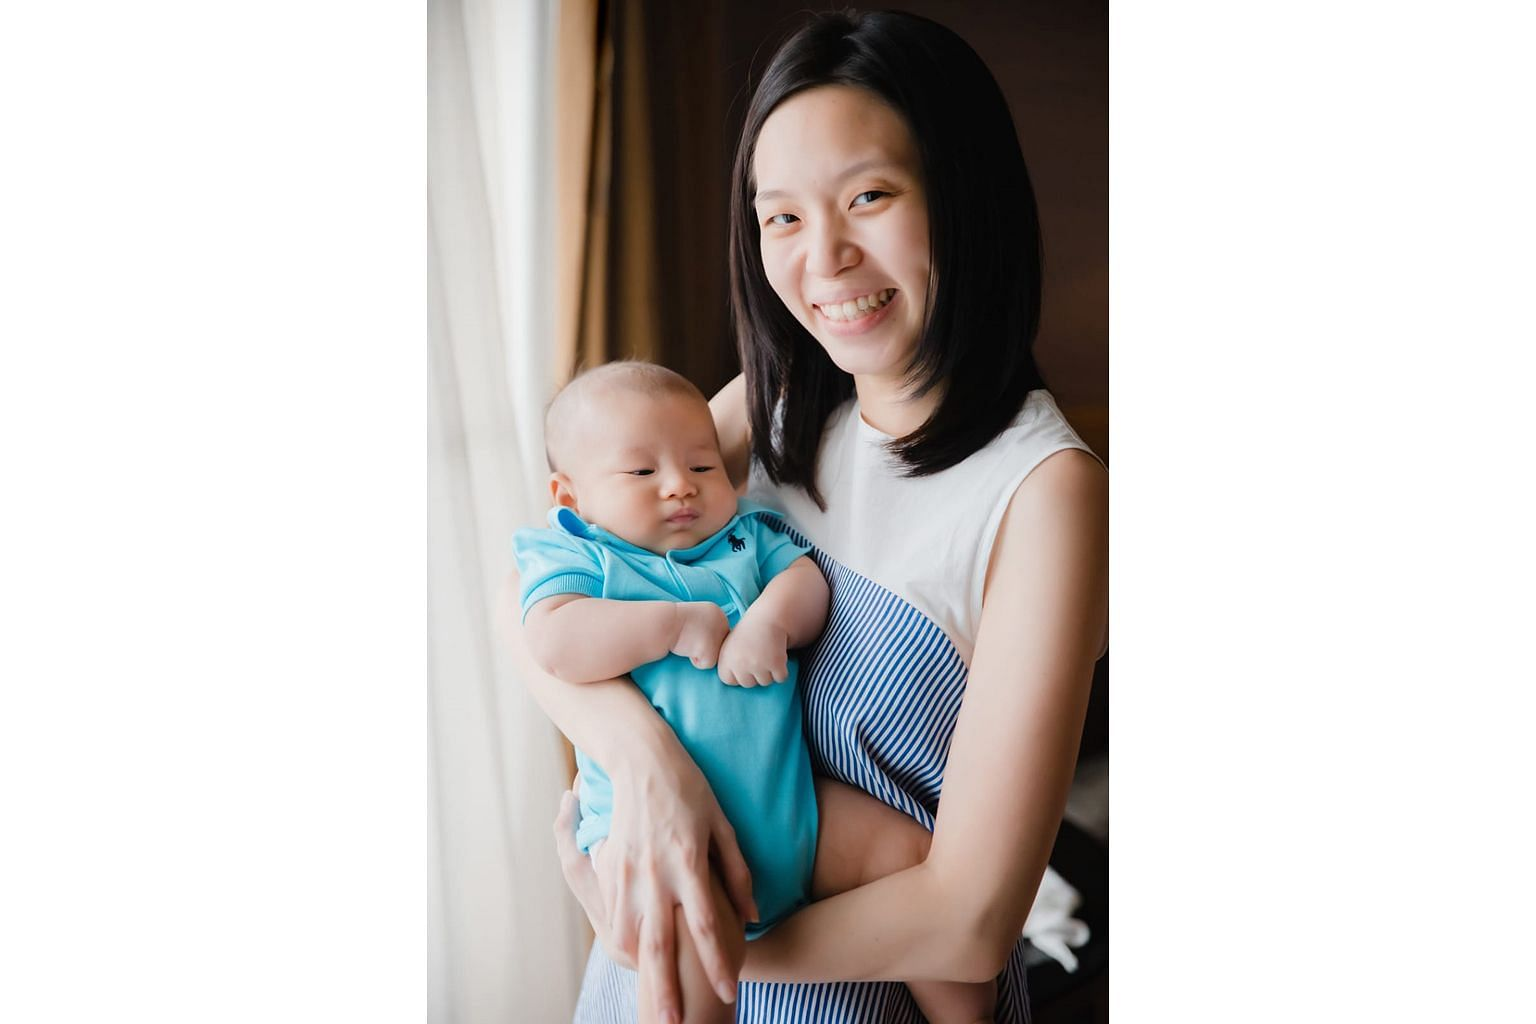 Ms Evelyn Koh Ai-Ping had painful engorged breasts after giving birth, but with tips and support from a lactation consultant, she now enjoys breastfeeding her son.